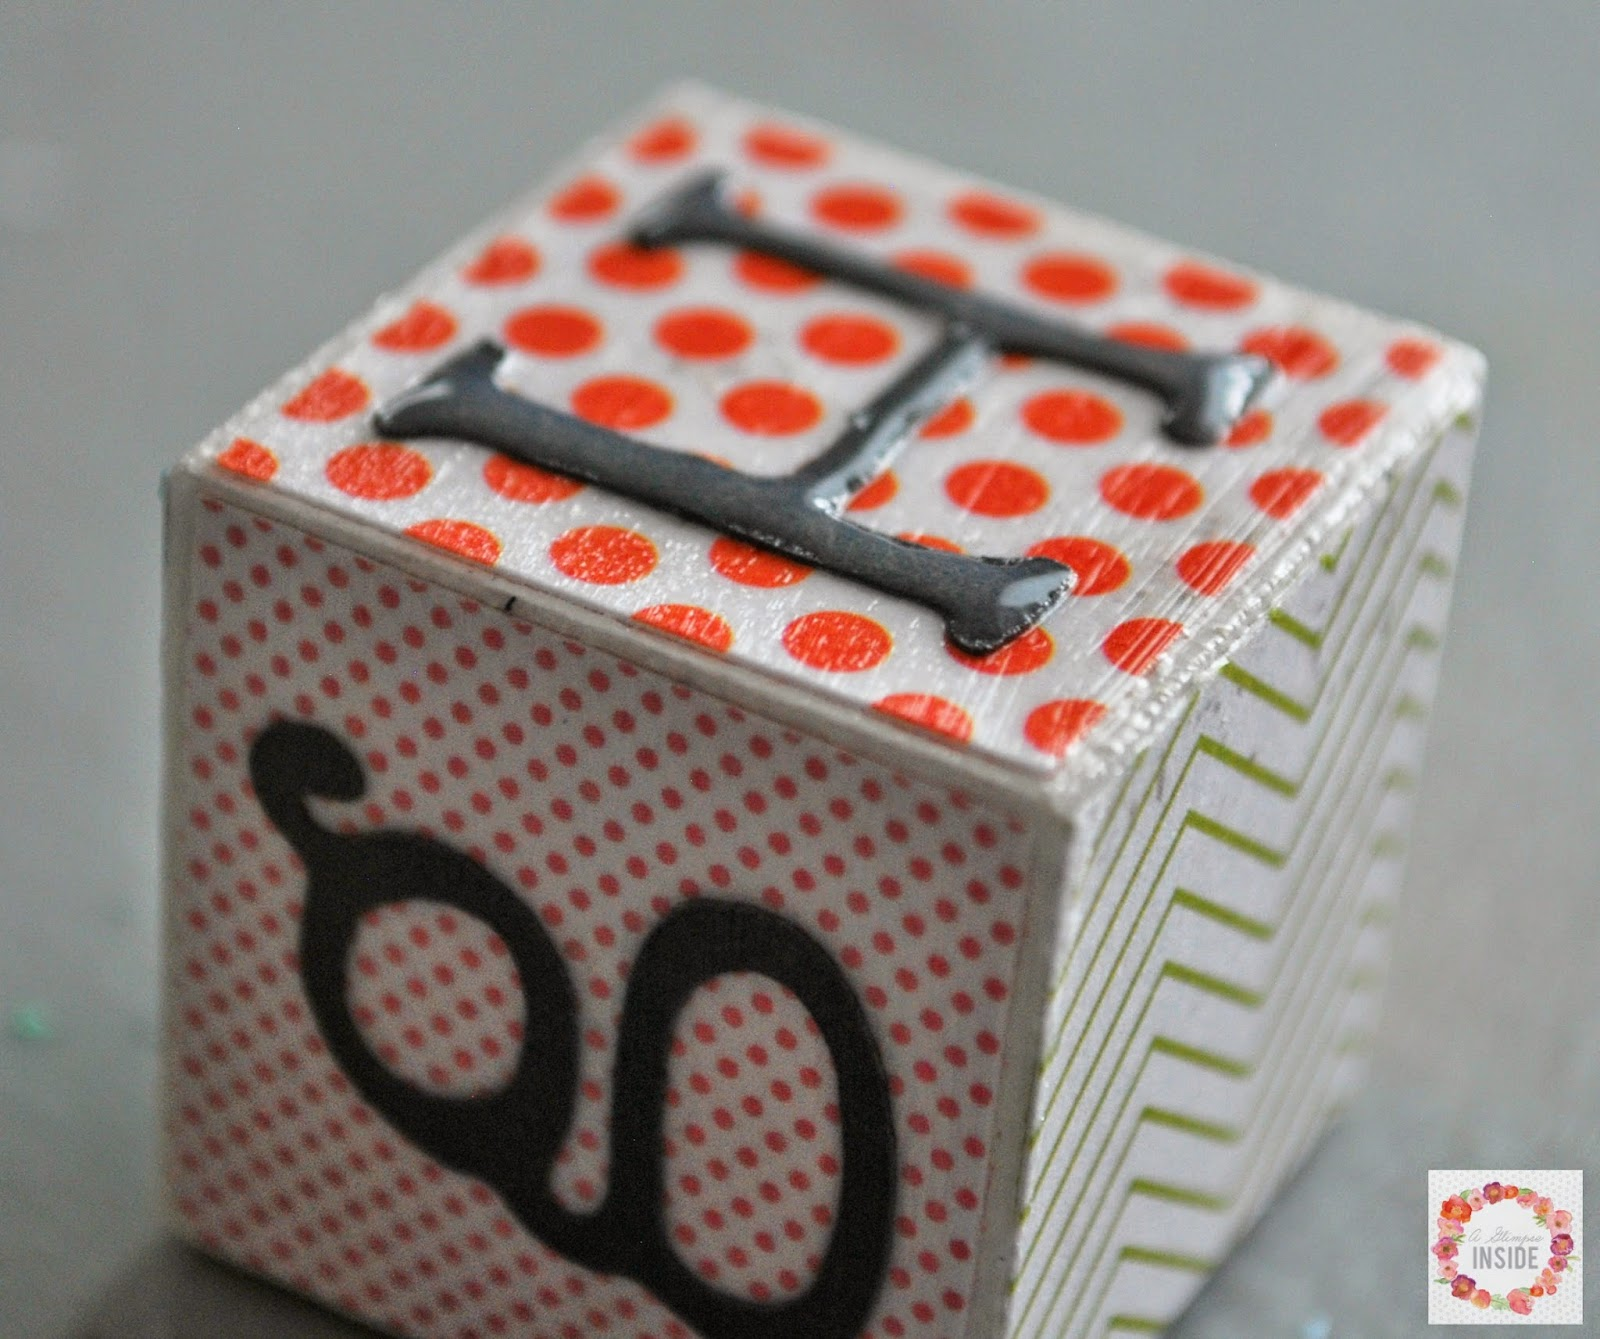 DIY Alphabet Blocks by A Glimpse Inside | Mabey She Made It | # DIY #alphabet #school #blocks